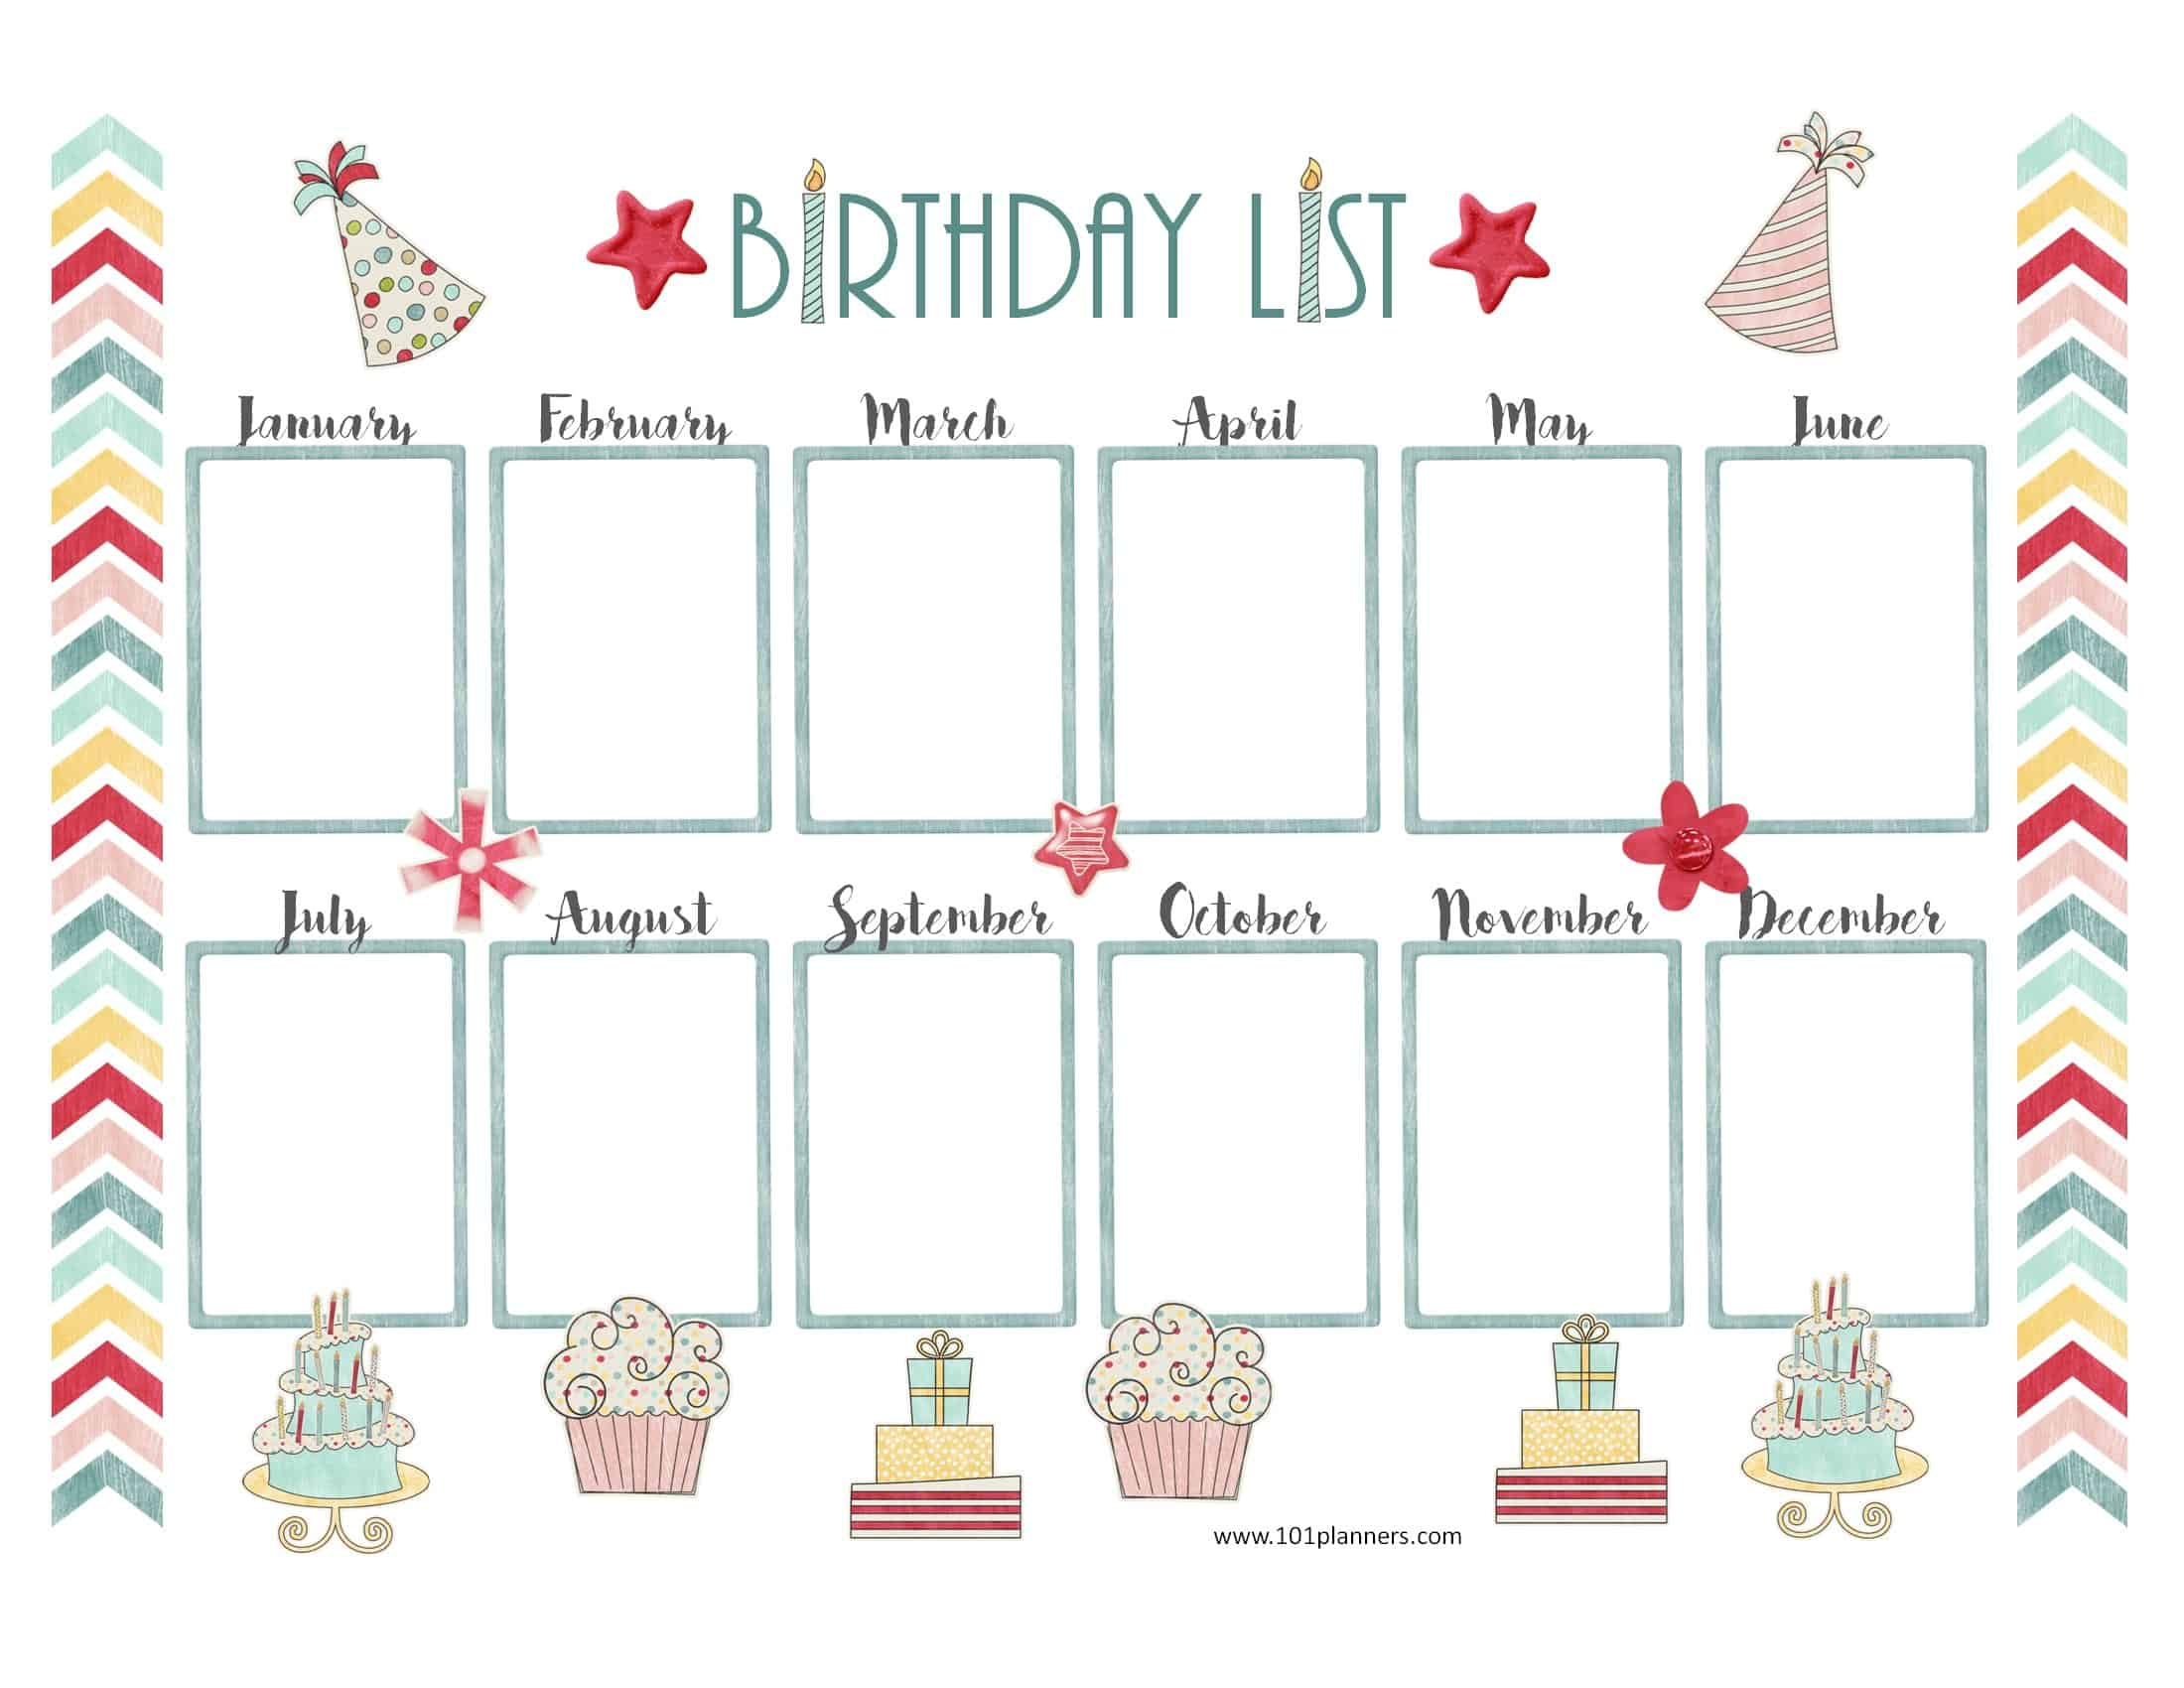 Free Birthday Calendar | Printable & Customizable | Many Designs! in Edited Birthday Calendar Template